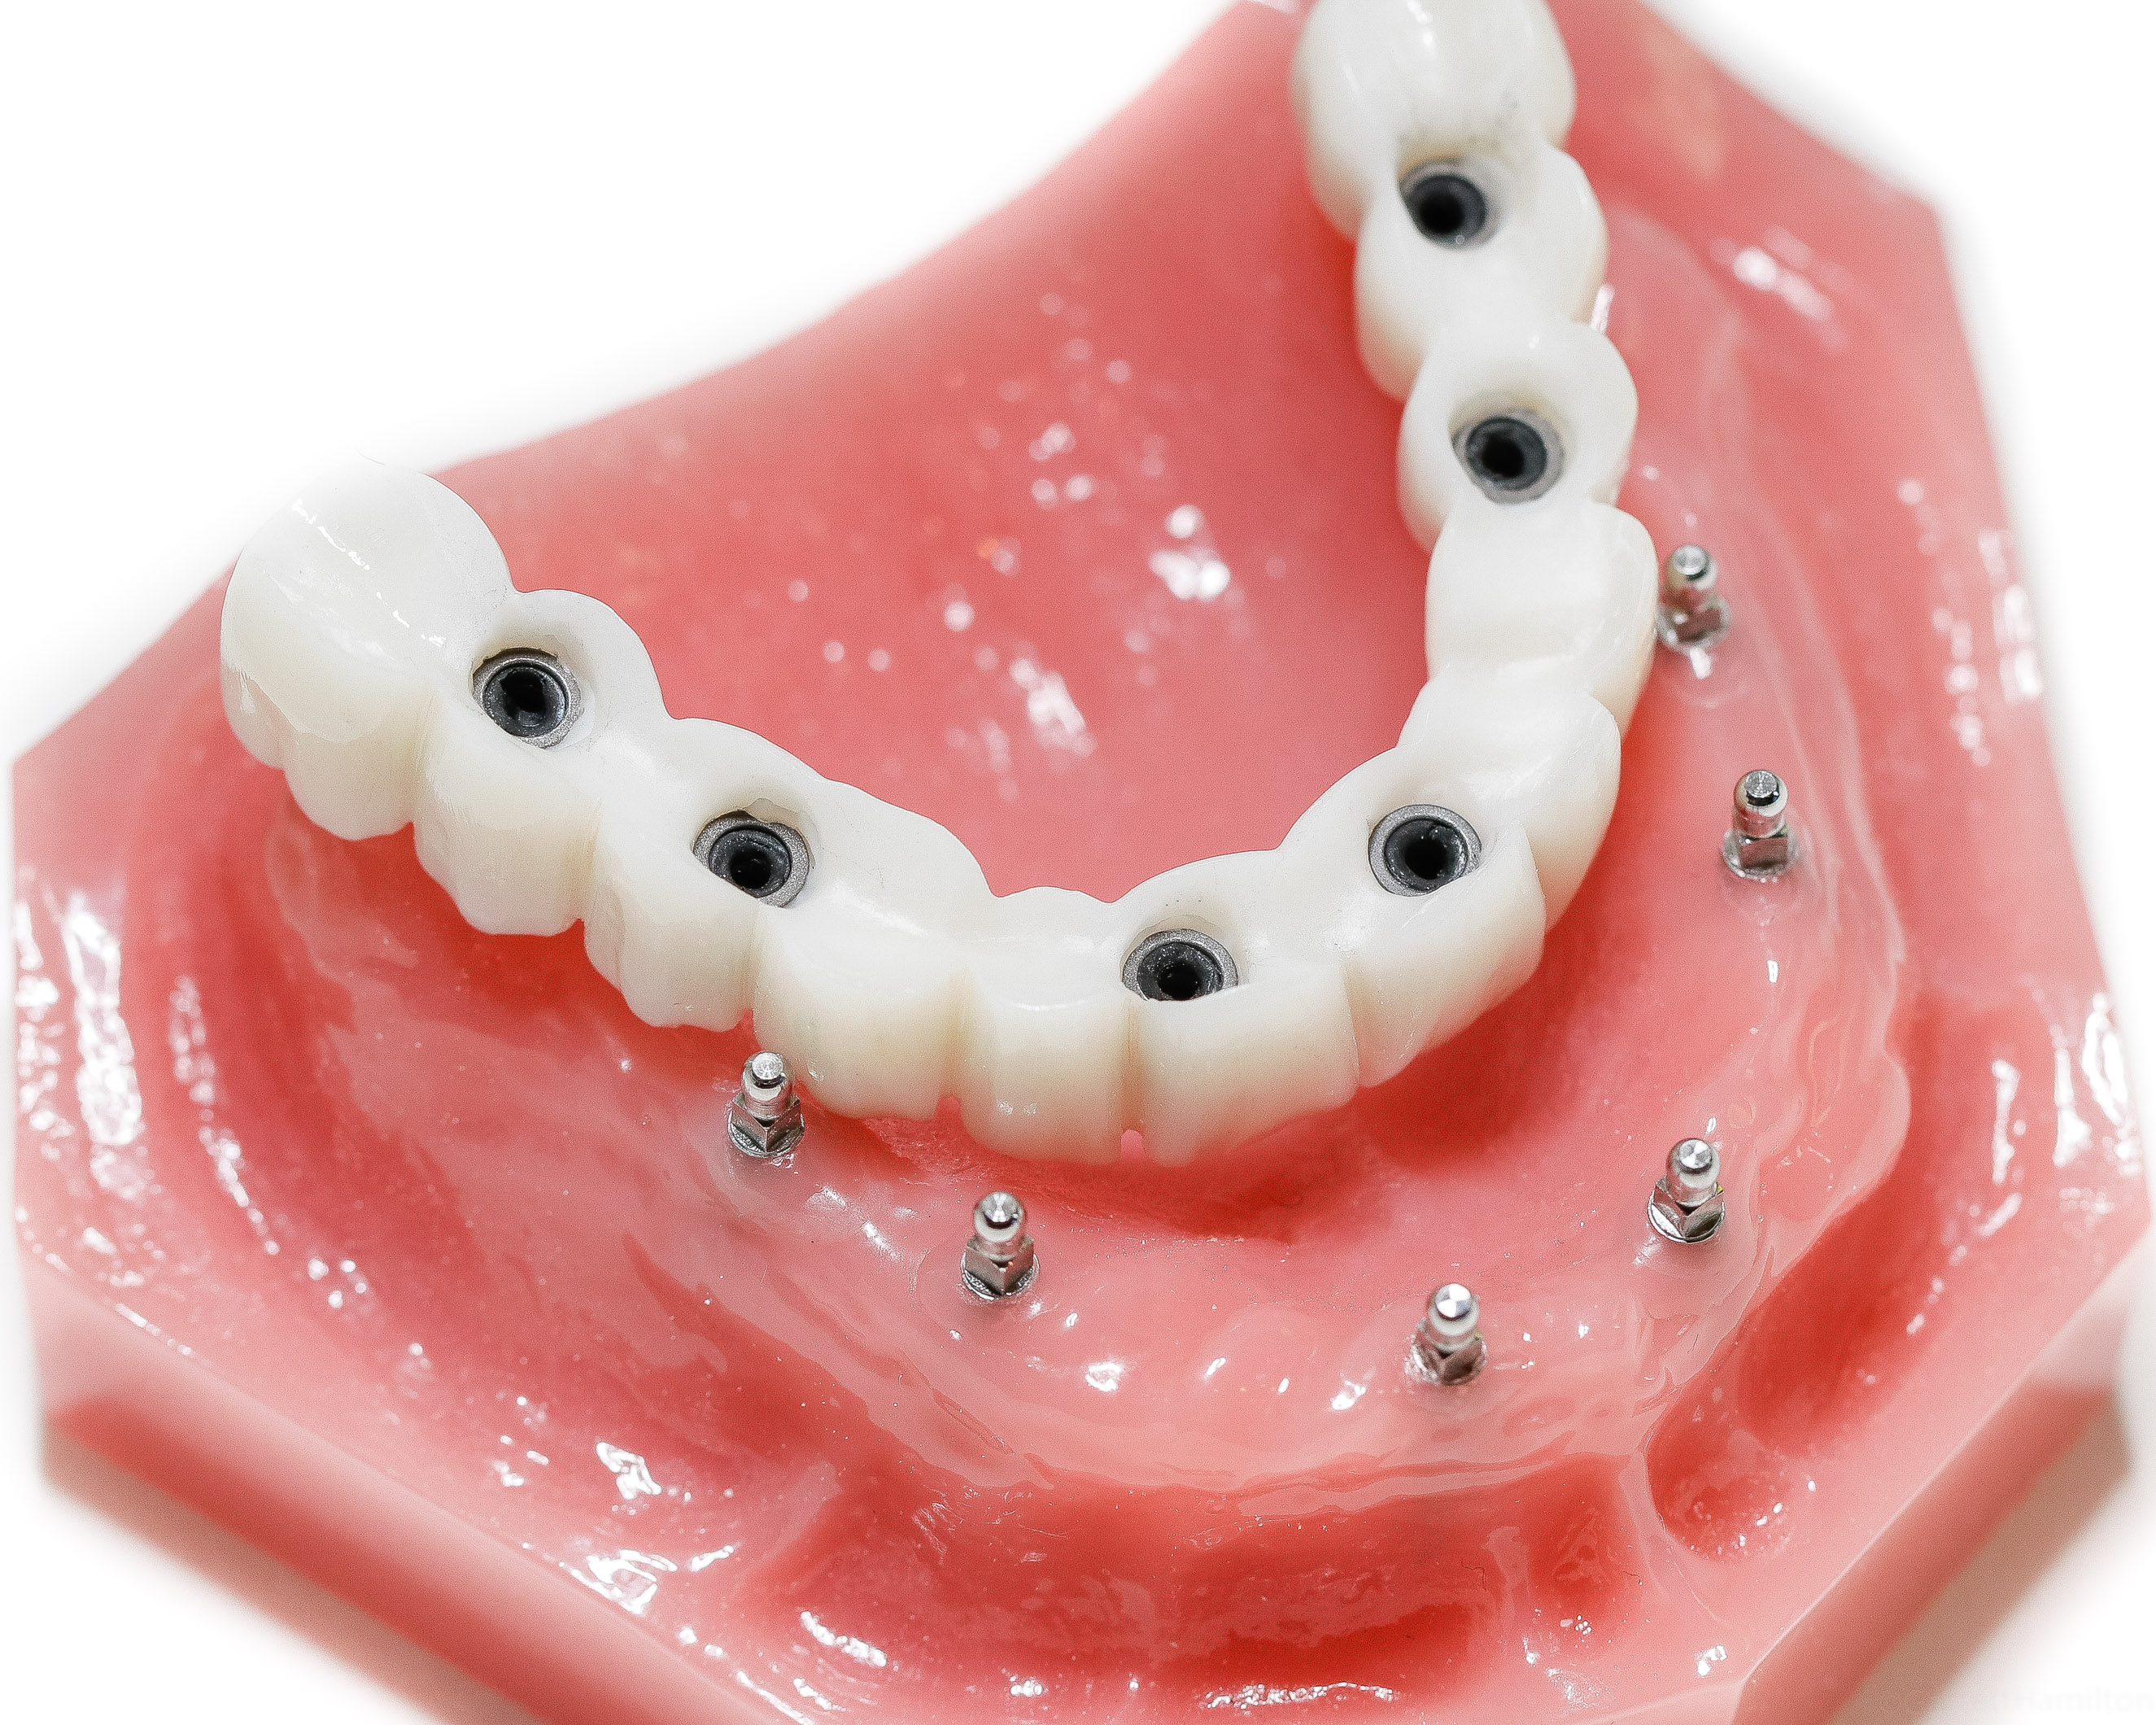 featured image for permanent dentures in the Philippines